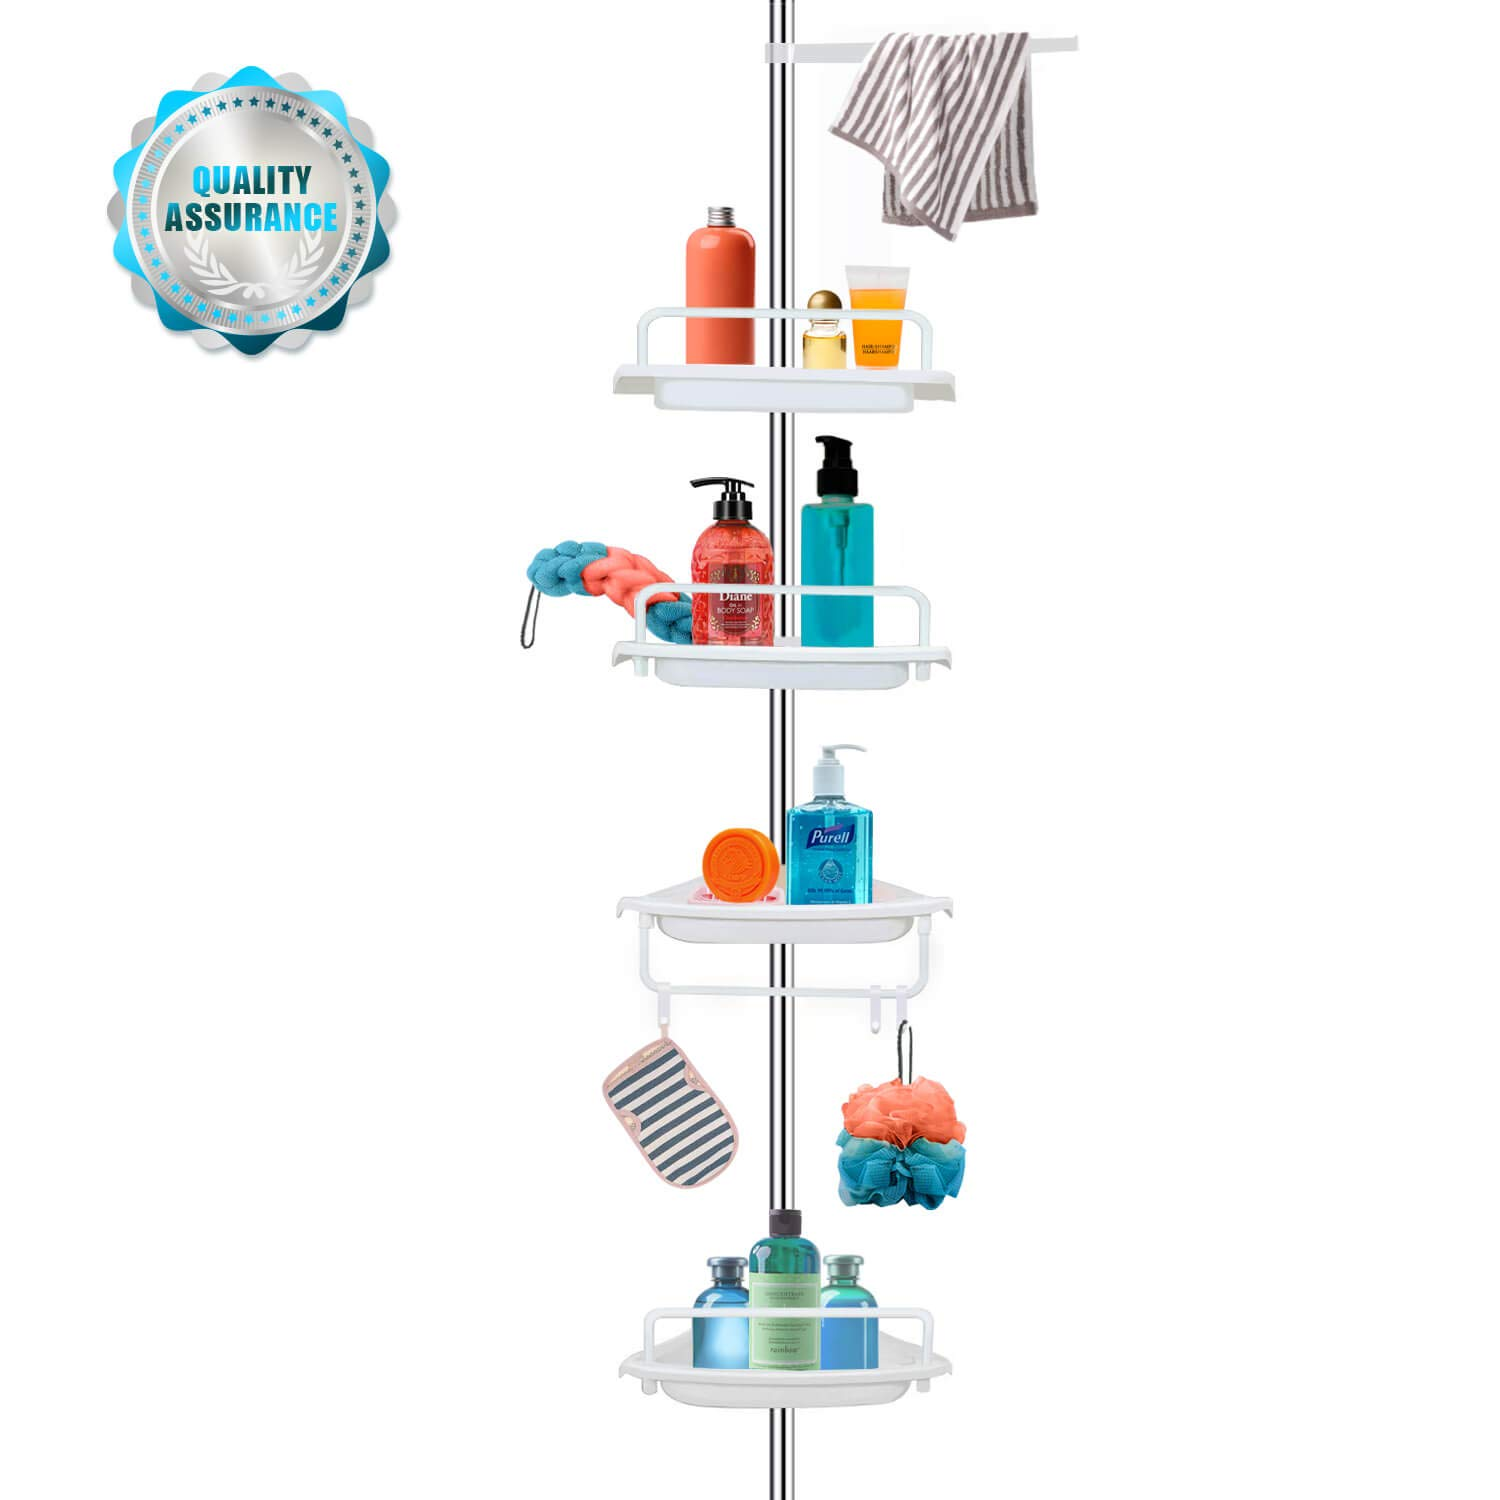 Vailge Adjustable Constant Tension Corner Shower Caddy,Rustproof Stainless Steel Shower Caddy Pole,4 Positionable Shelves Tension Shower Caddy,Strong and Sturdy,White -1 Pack by Vailge